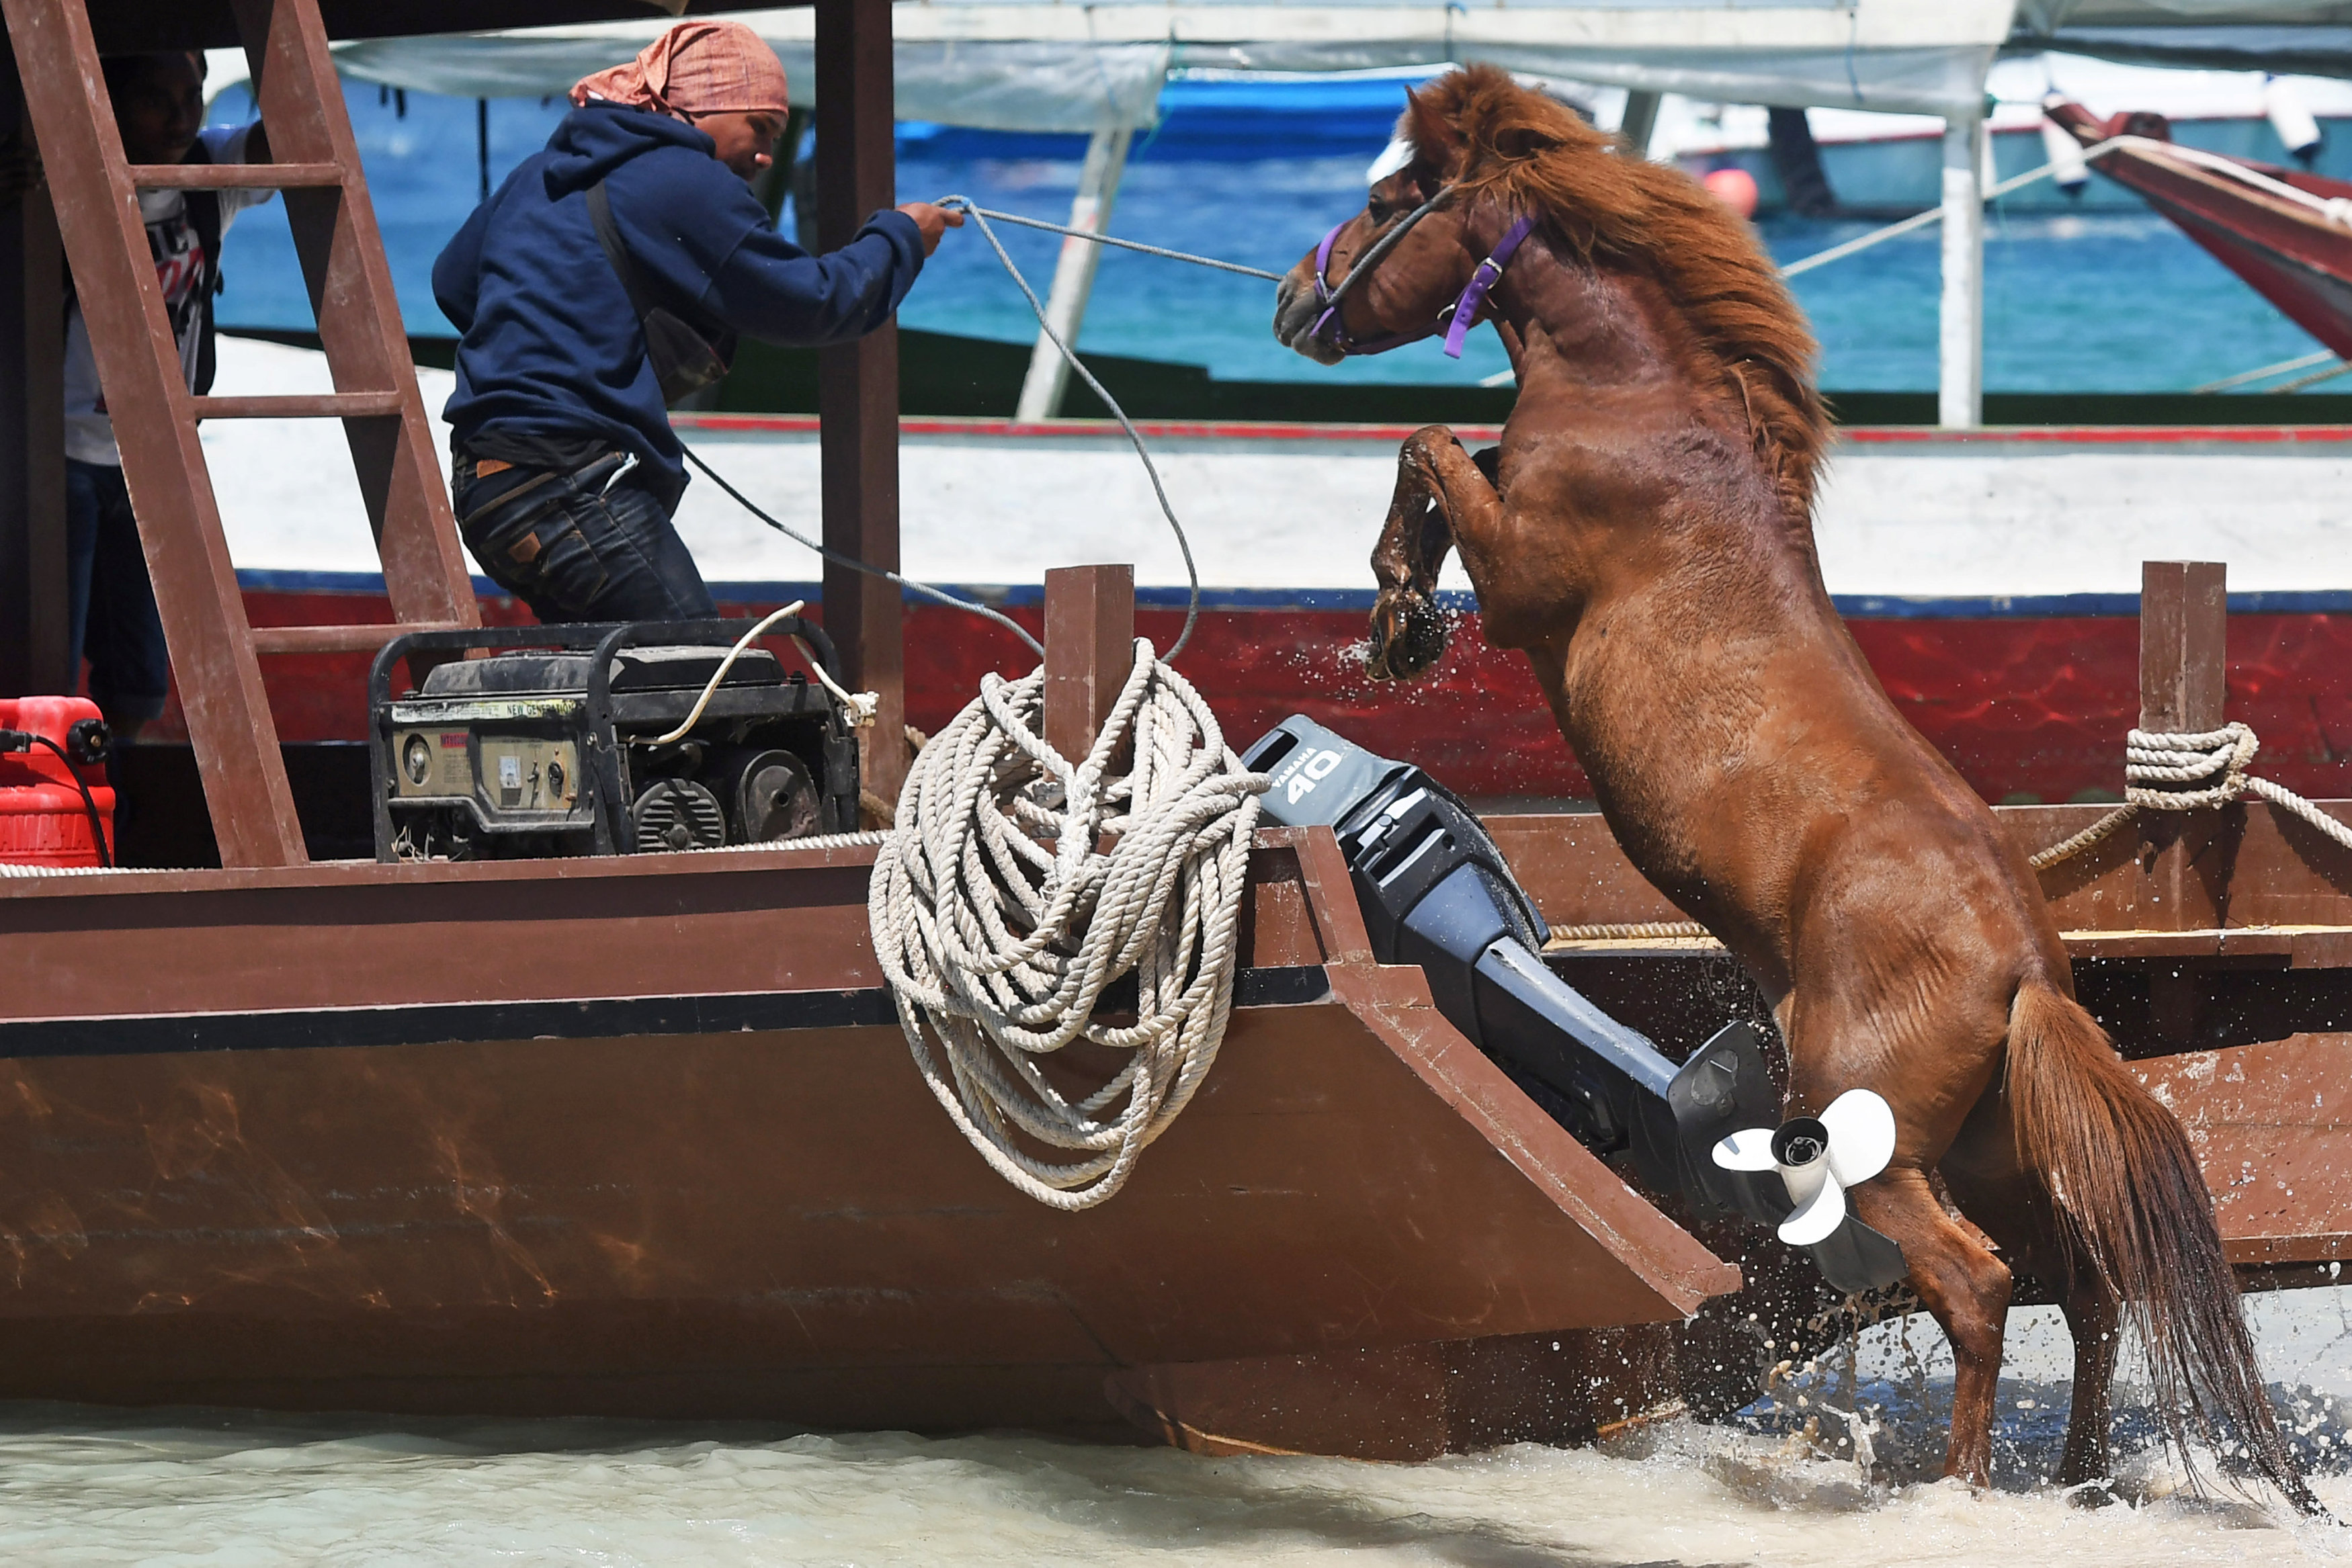 A man guides a horse onto a boat to transport it to the mainland following Sunday's earthquake on Gili Trawangan, Lombok